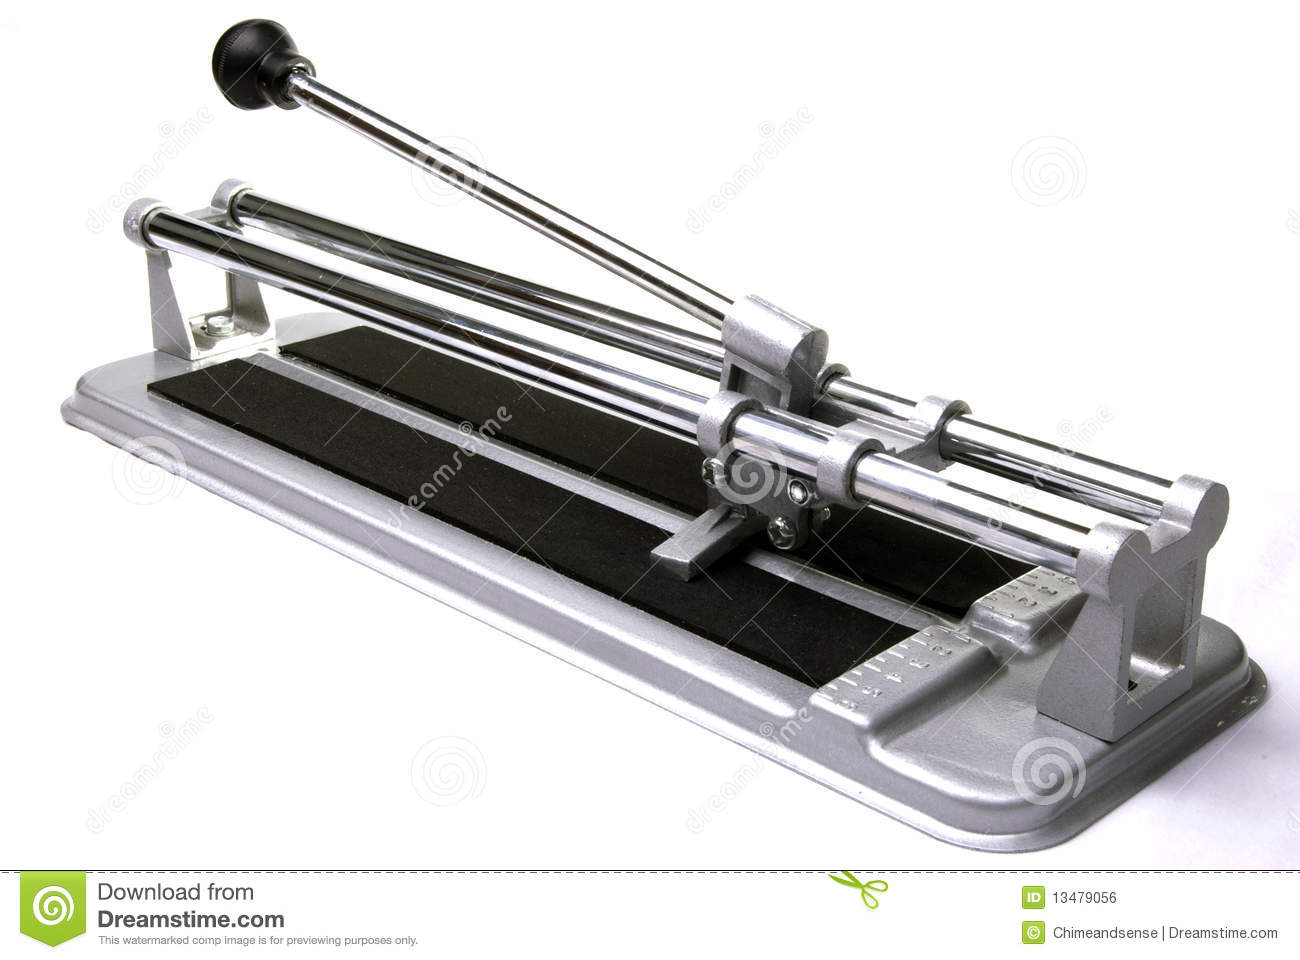 Ceramic Tile Cutter ~ Tile cutter royalty free stock image